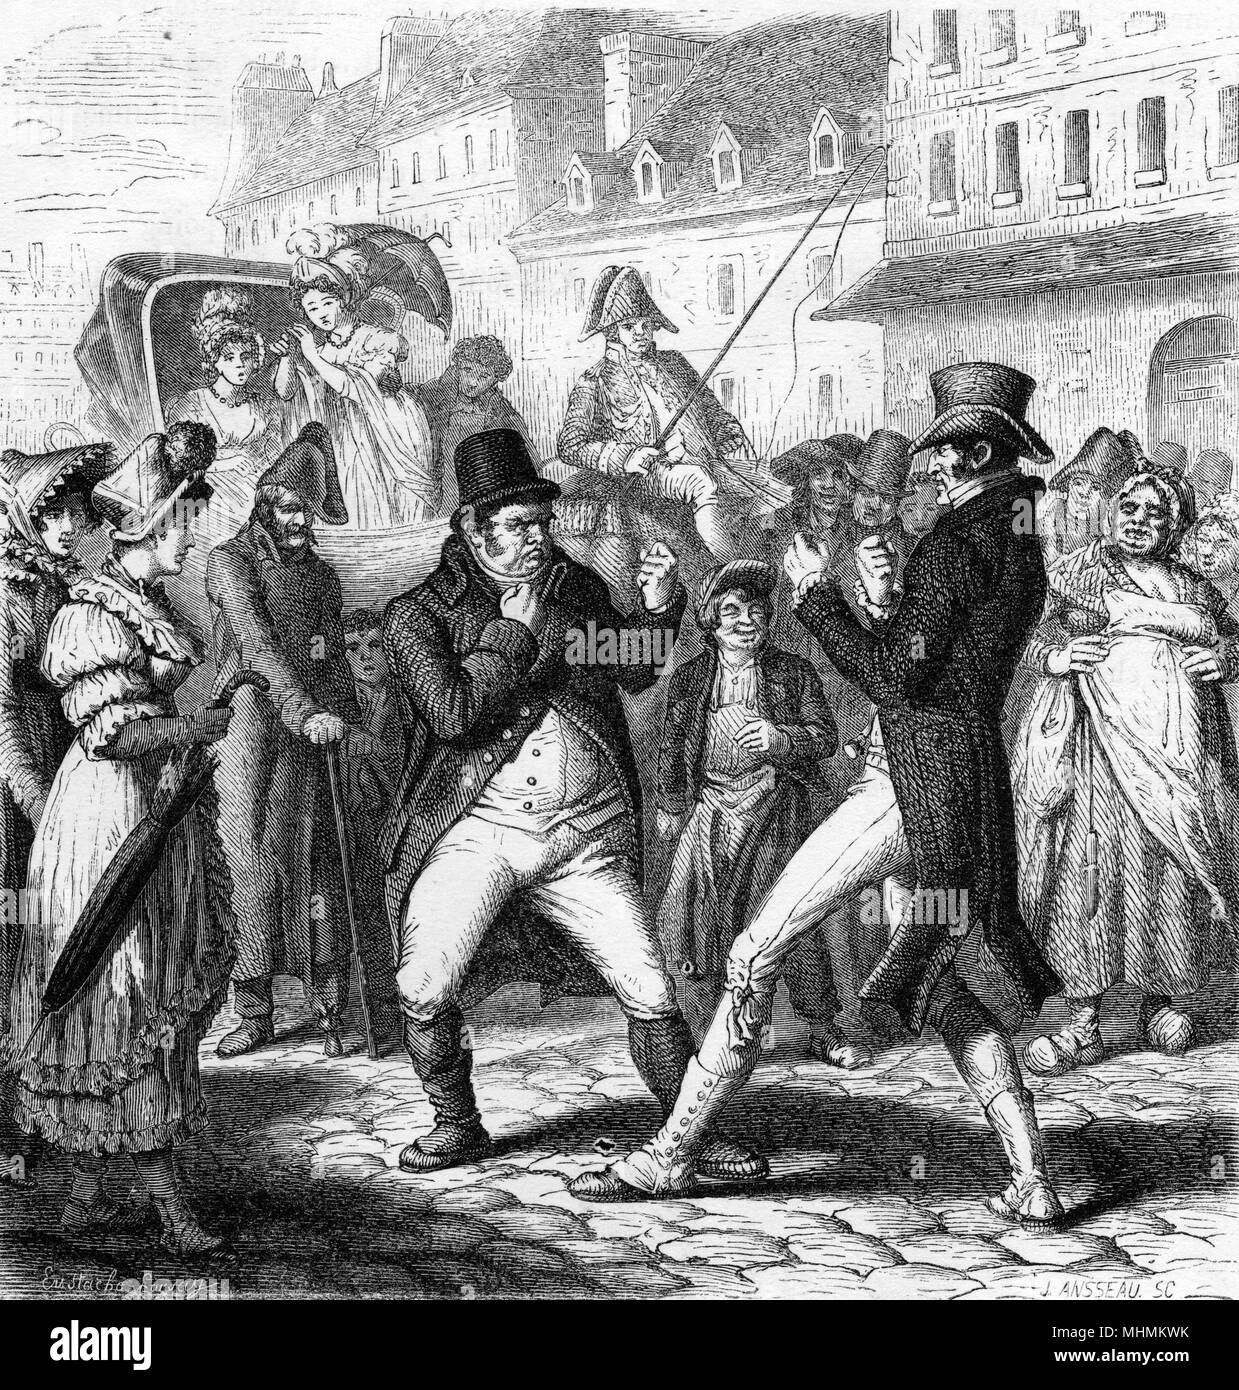 Street fight: two gentlemen brandish fists at each other in front of a large crowd, Paris.     Date: C.1820 - Stock Image